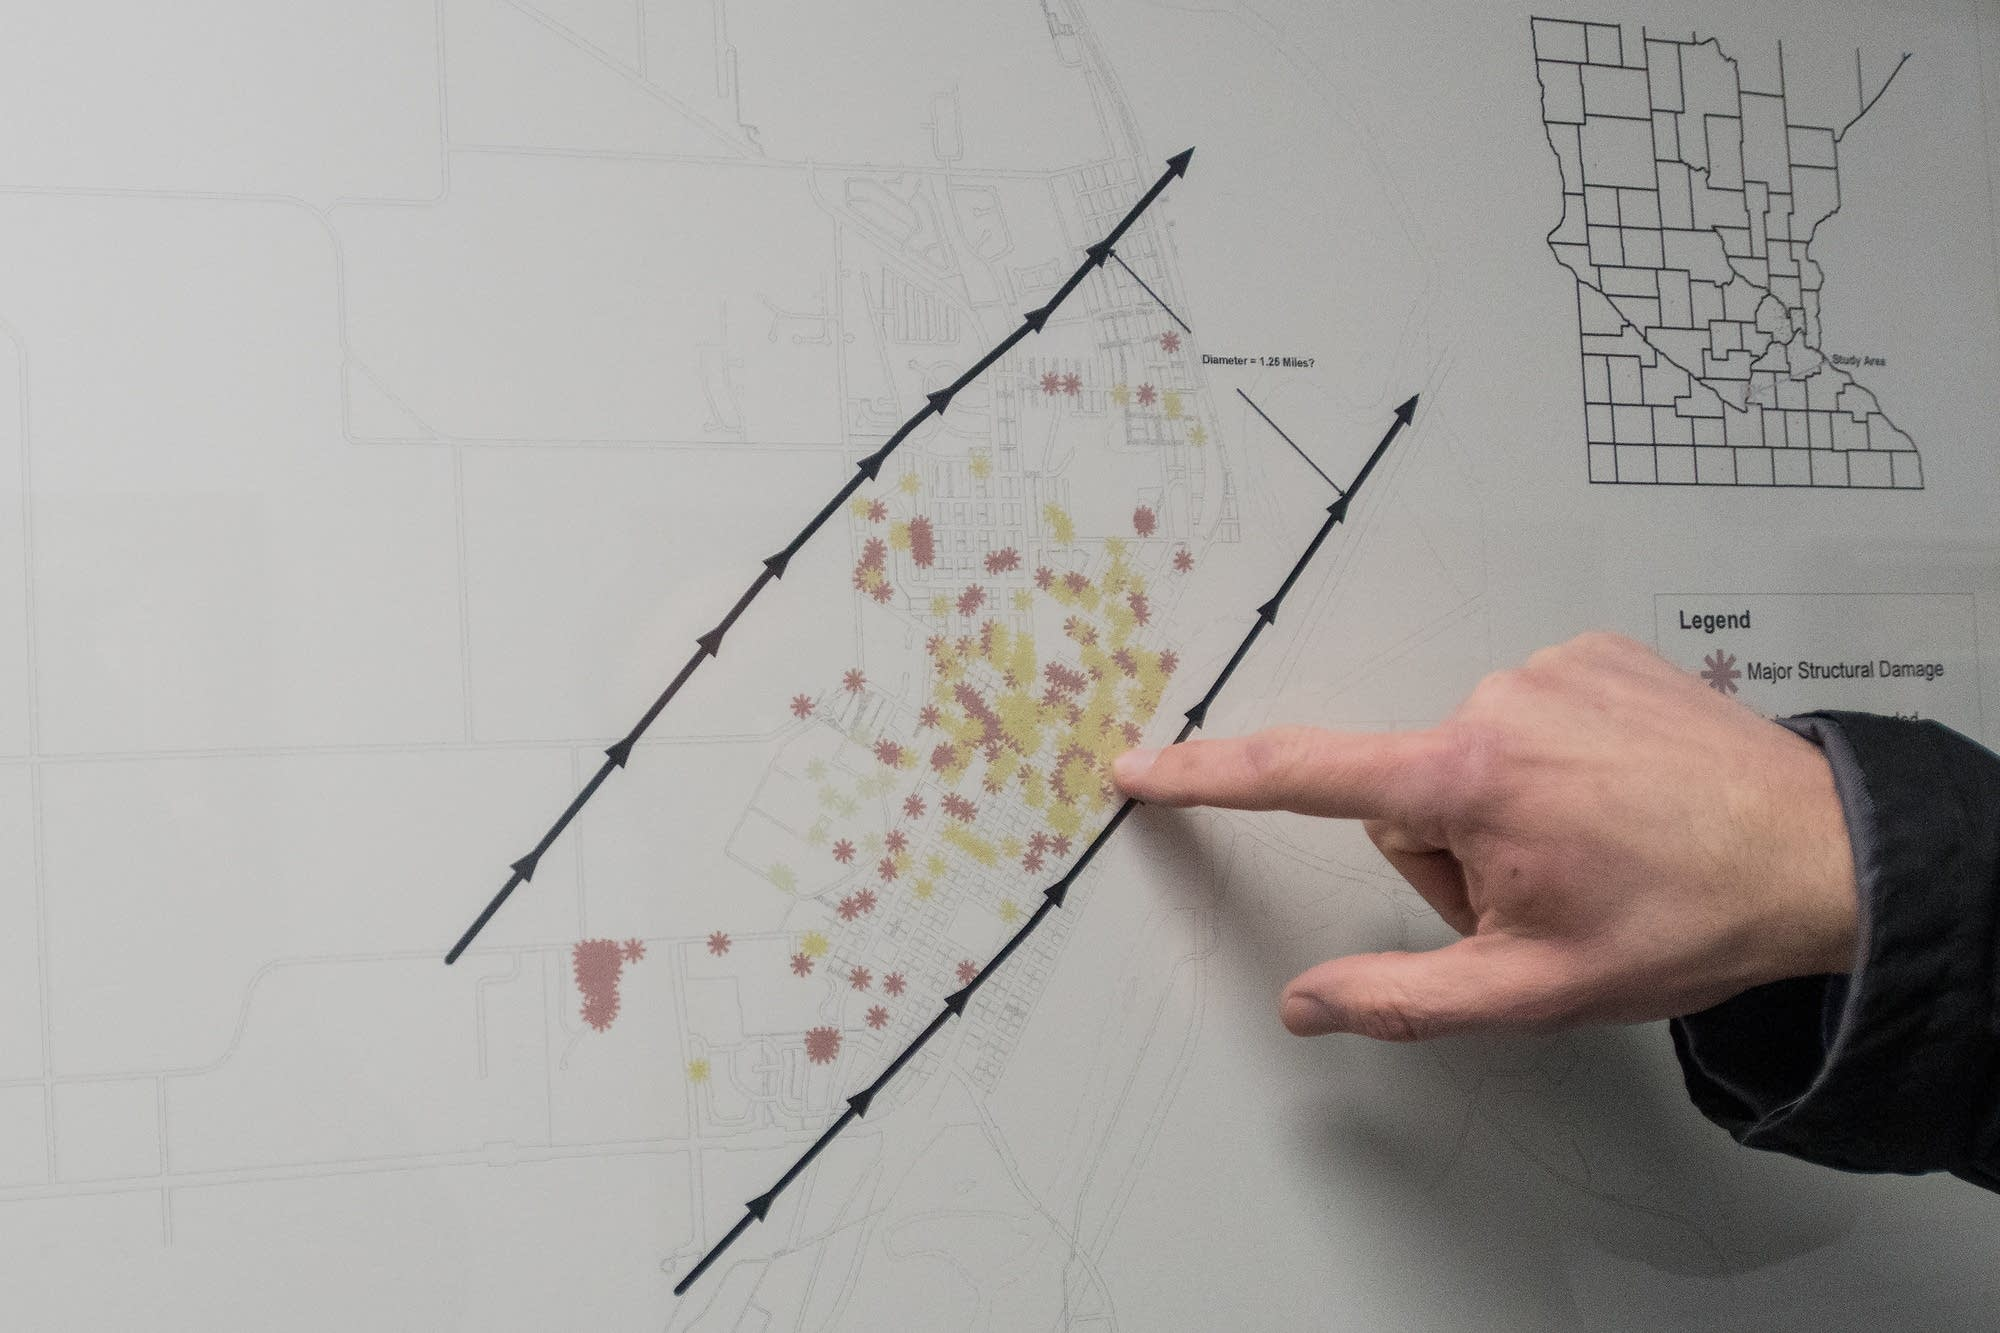 Prafke points out the downtown area on a map of the path of the tornado.